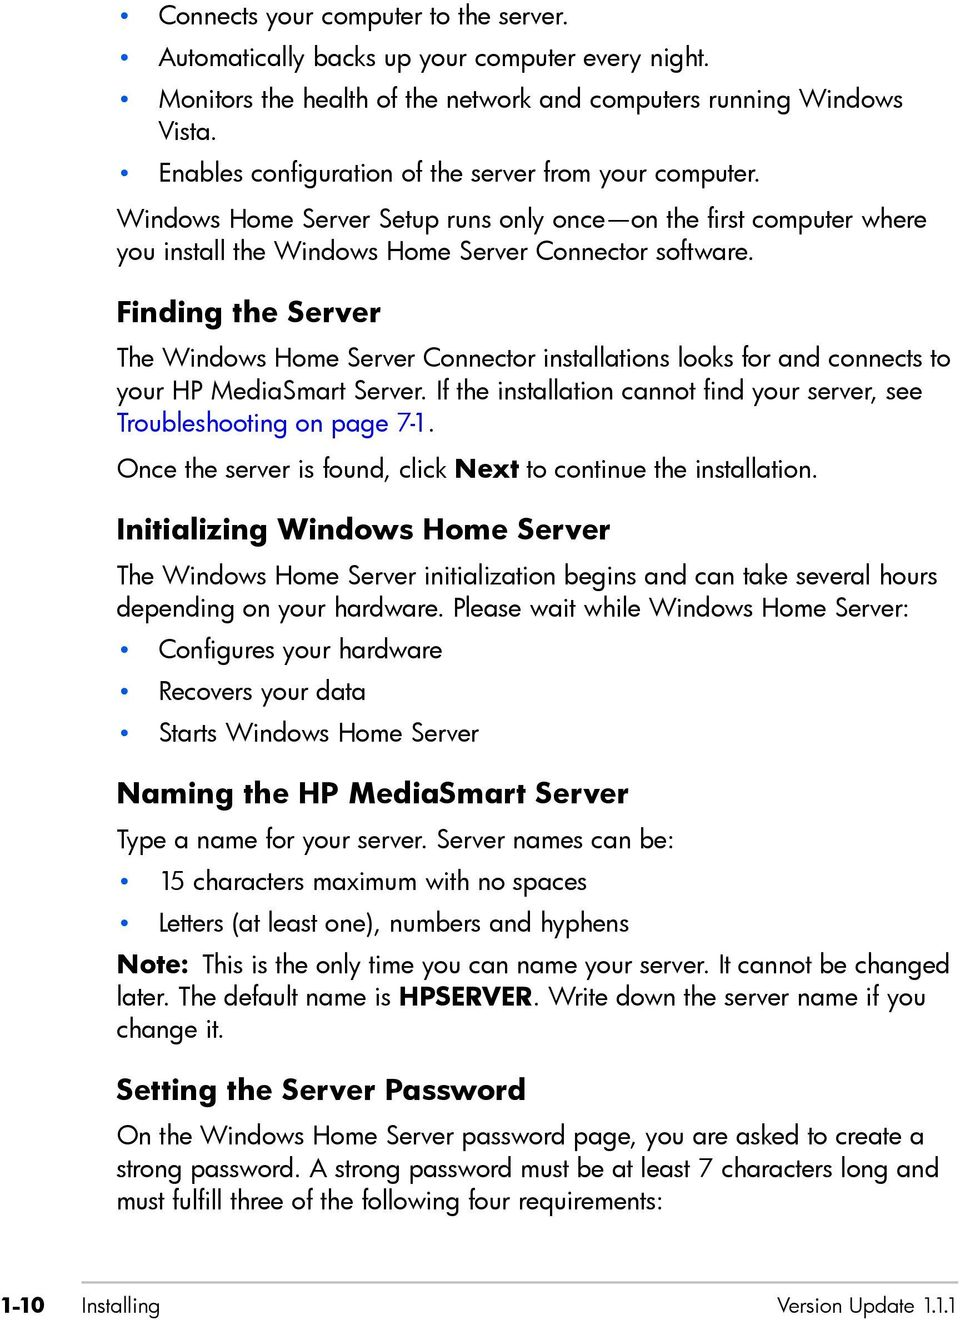 Finding the Server The Windows Home Server Connector installations looks for and connects to your HP MediaSmart Server. If the installation cannot find your server, see Troubleshooting on page 7-1.